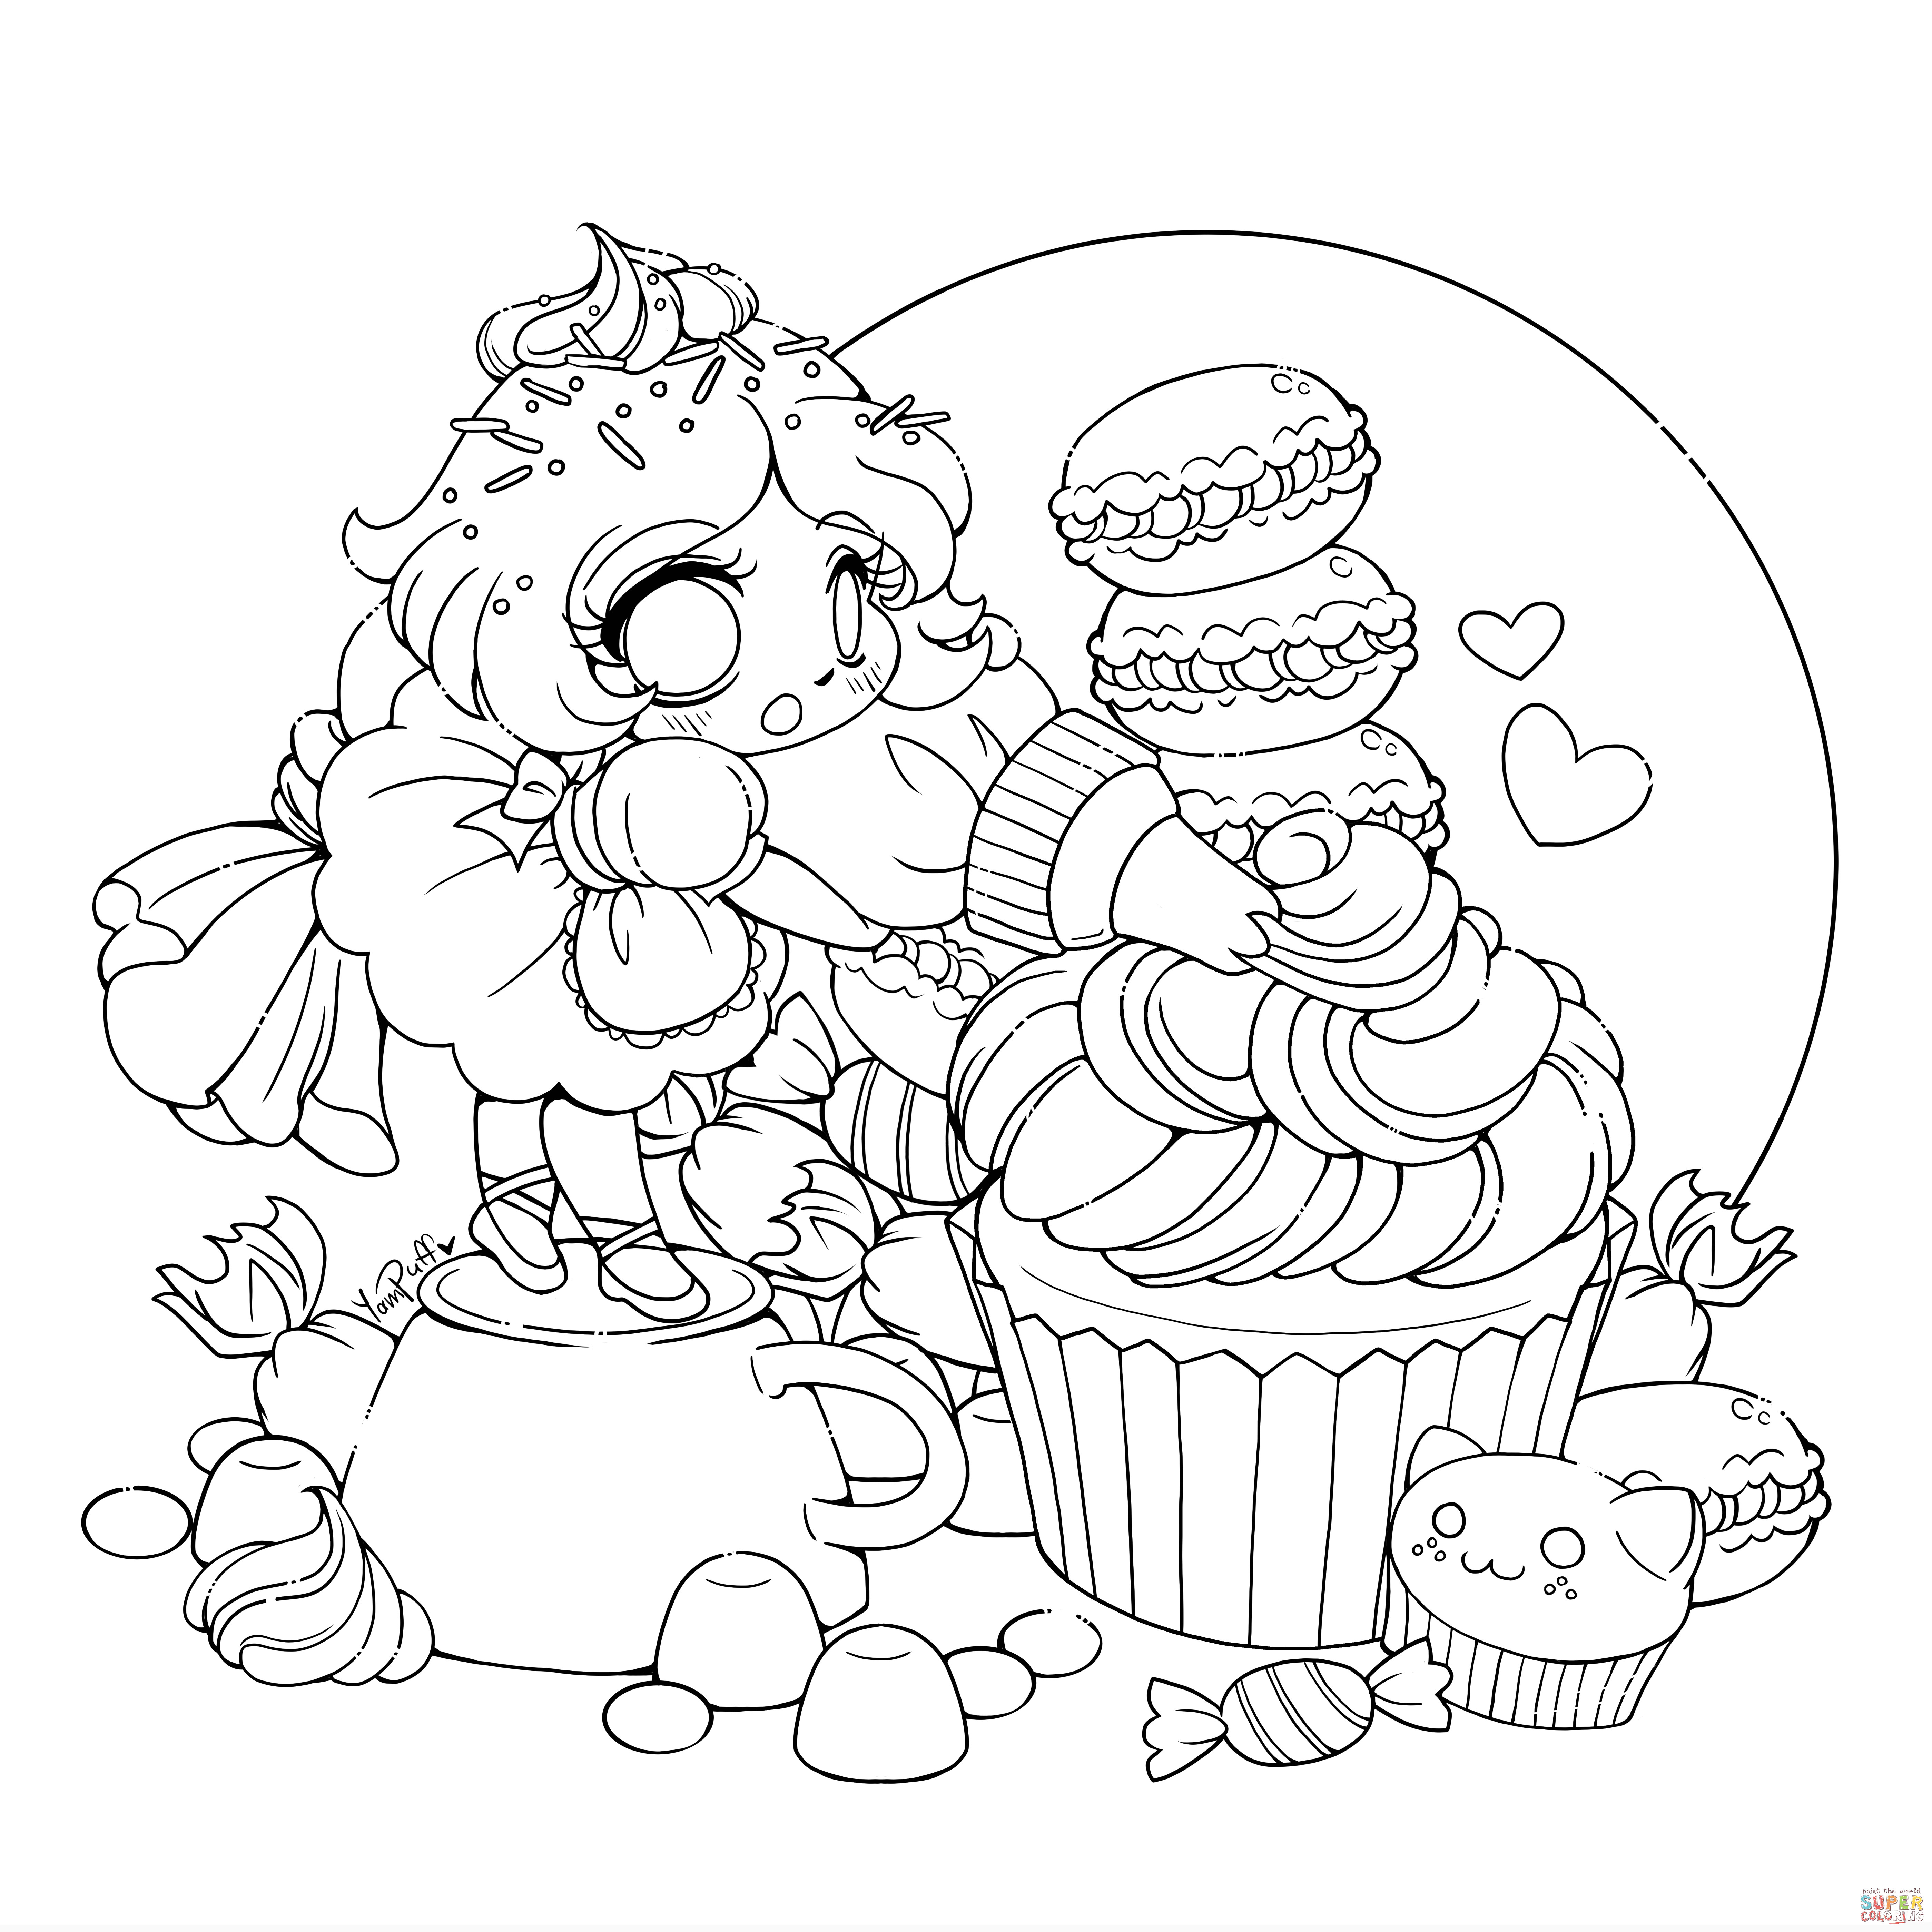 Chibi Girl Coloring Pages  Anime Girl Coloring Pages coloringsuite